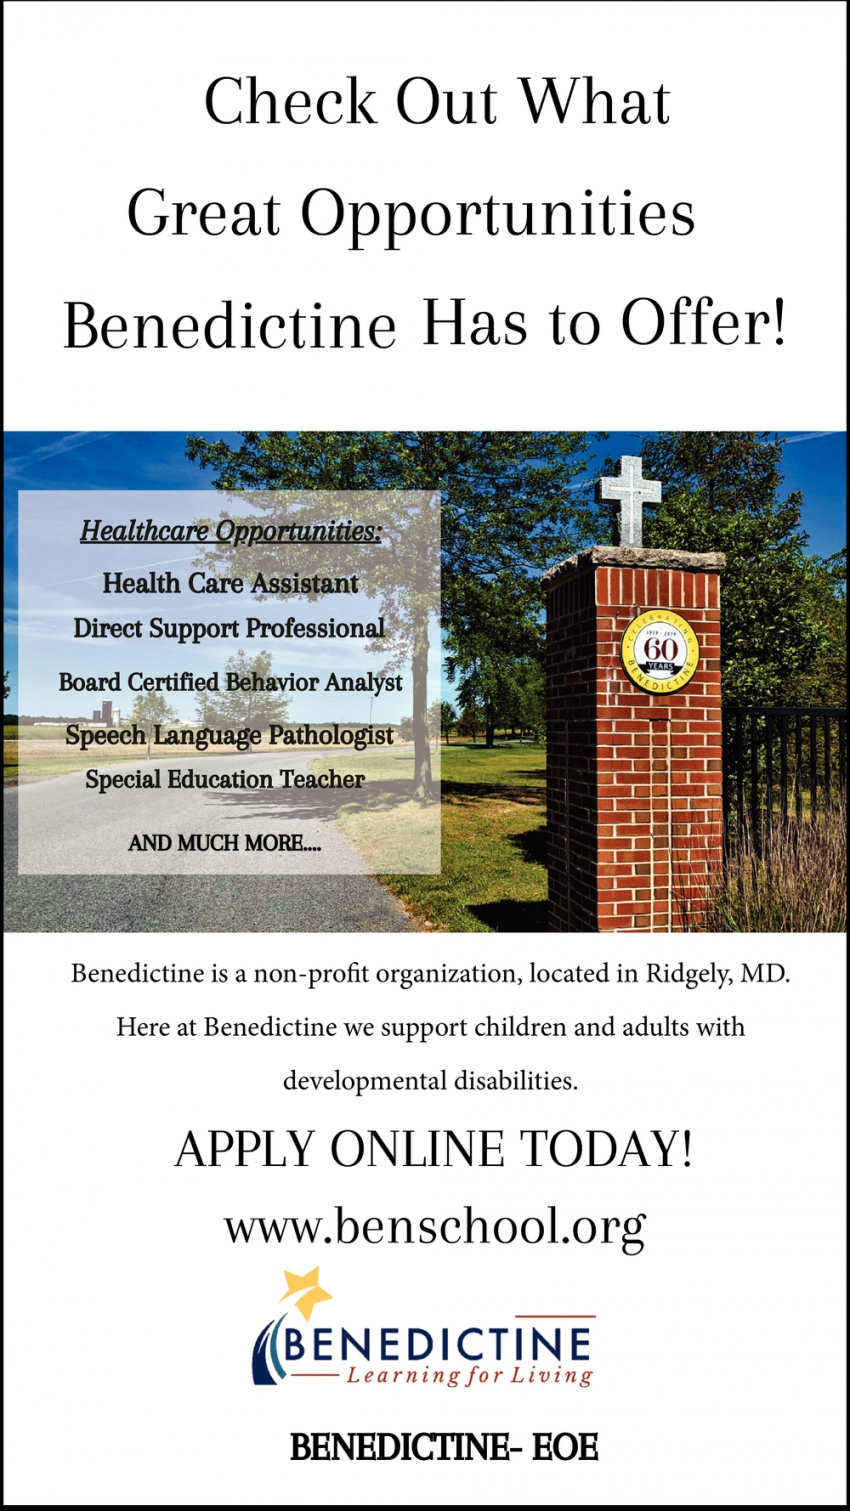 Check Out What Great Opportunities Benedictine Has To Offer!